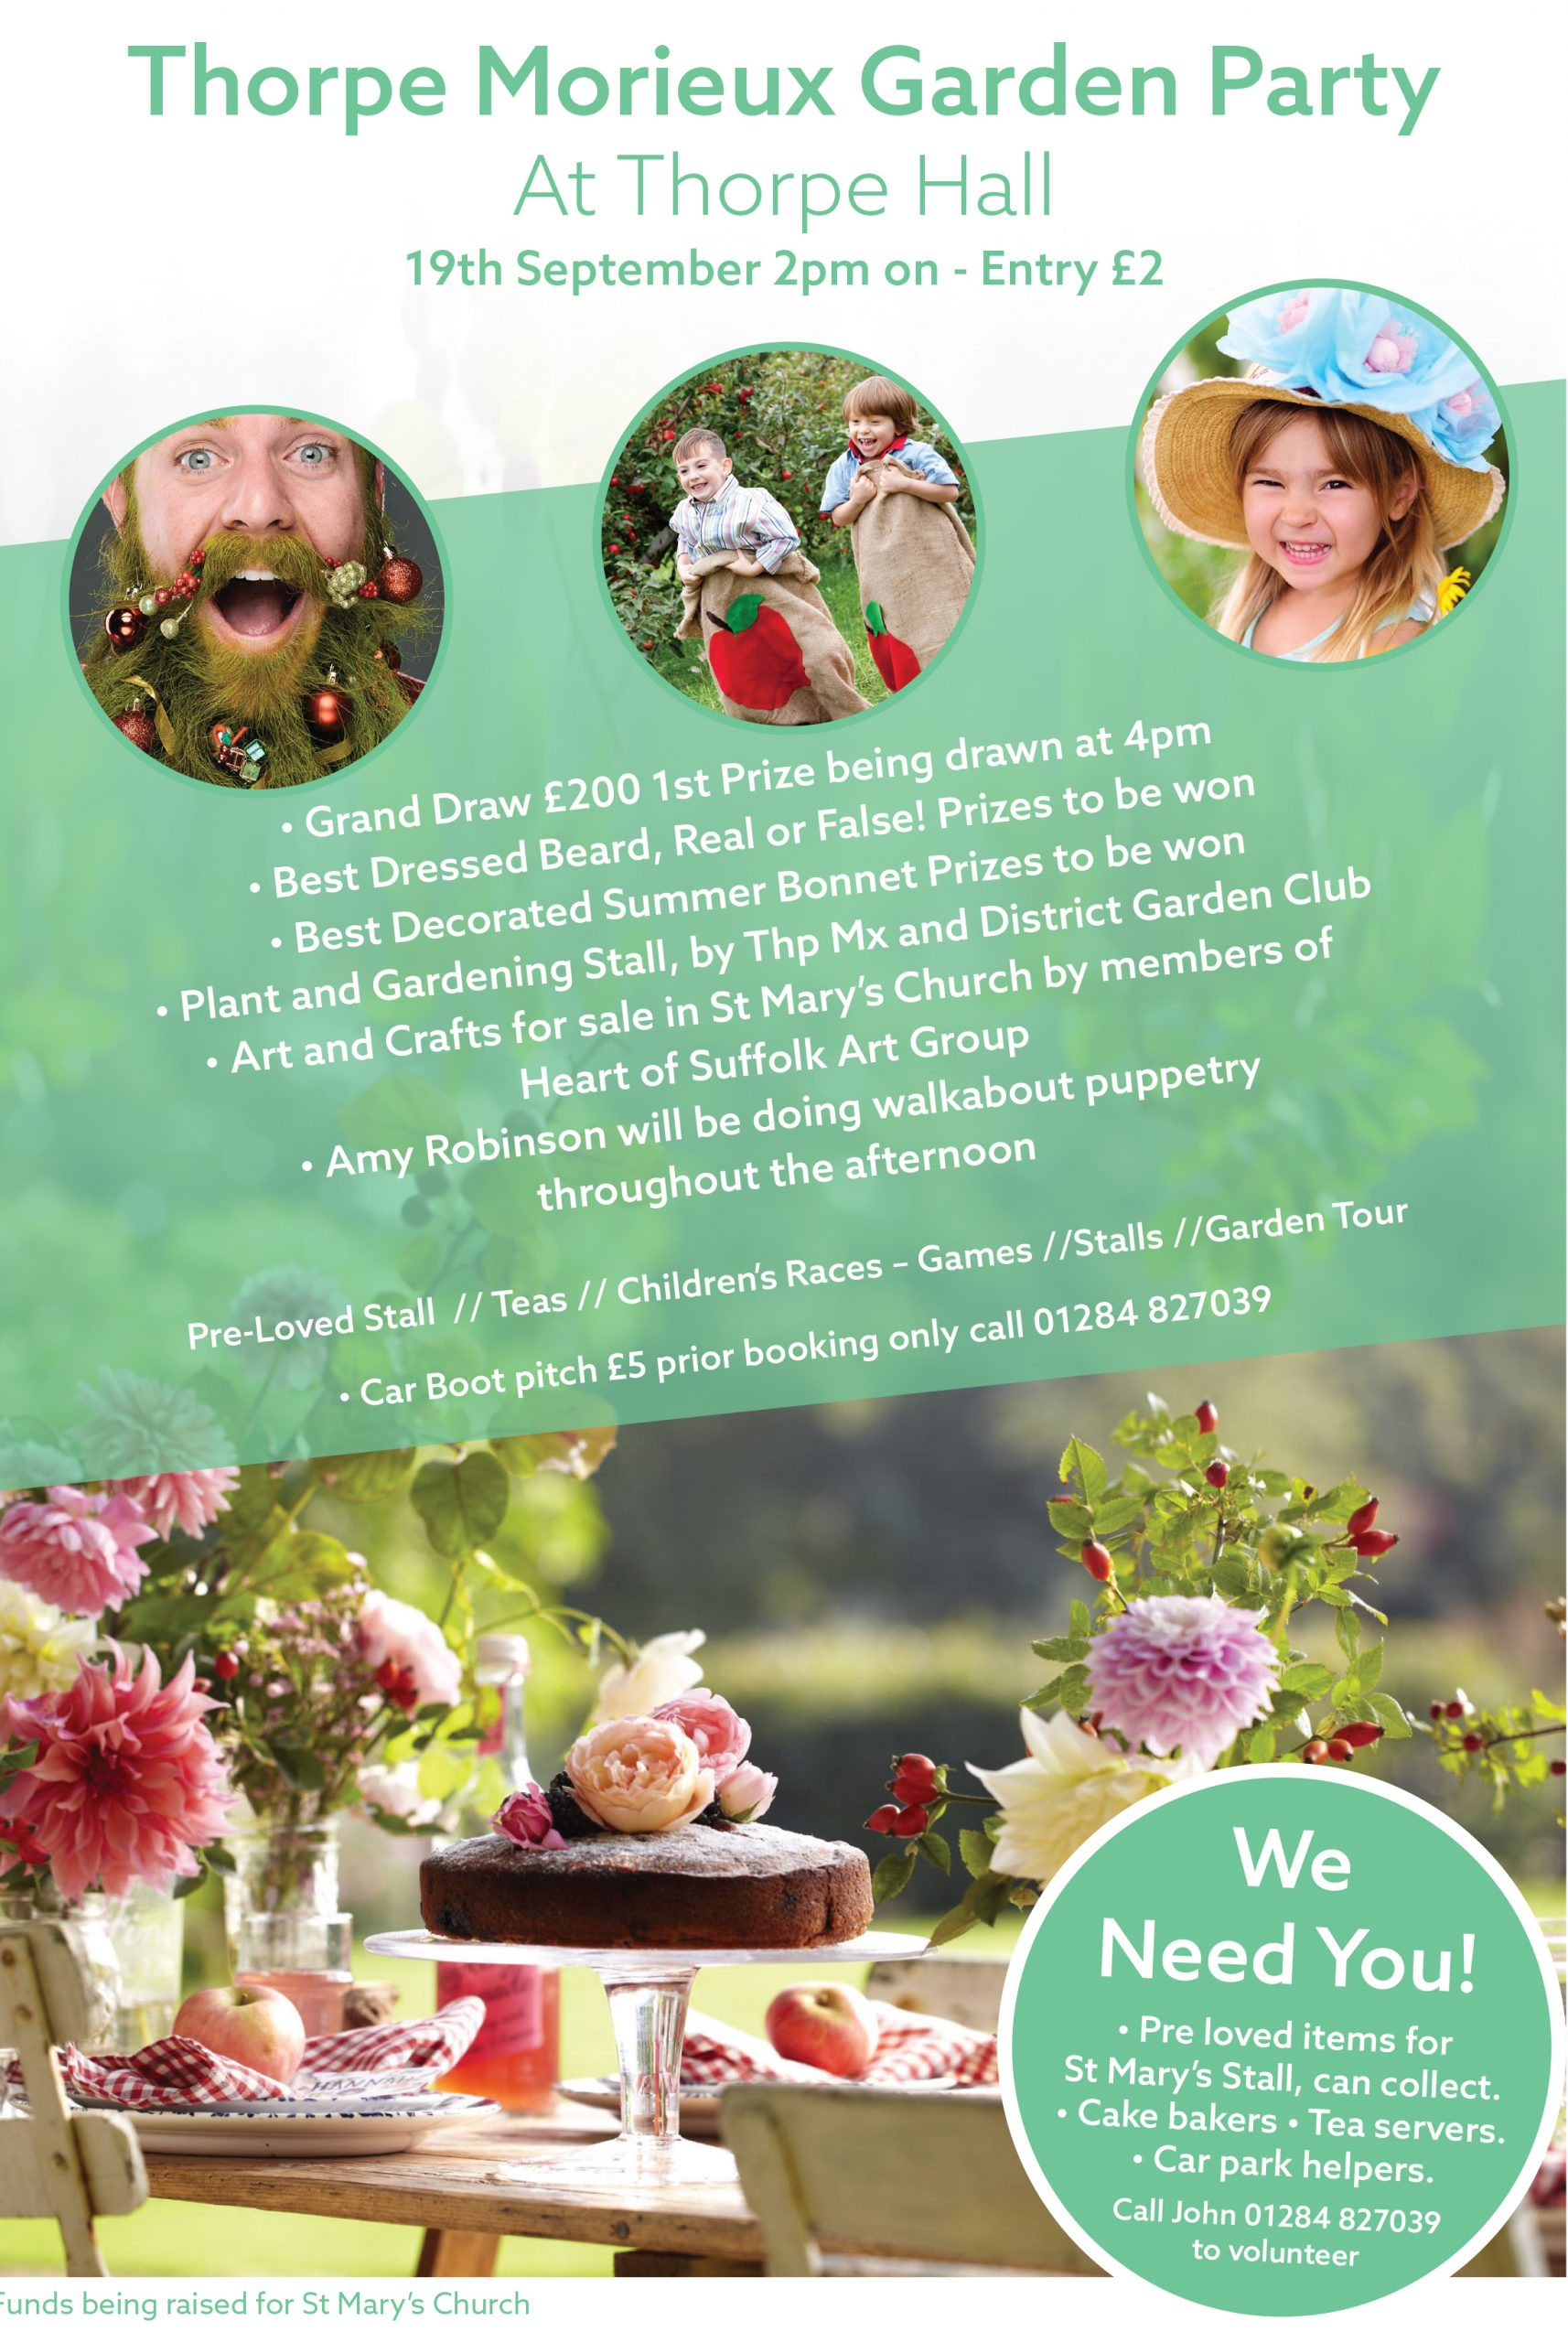 Thorpe Morieux 2021 Garden Party Ad